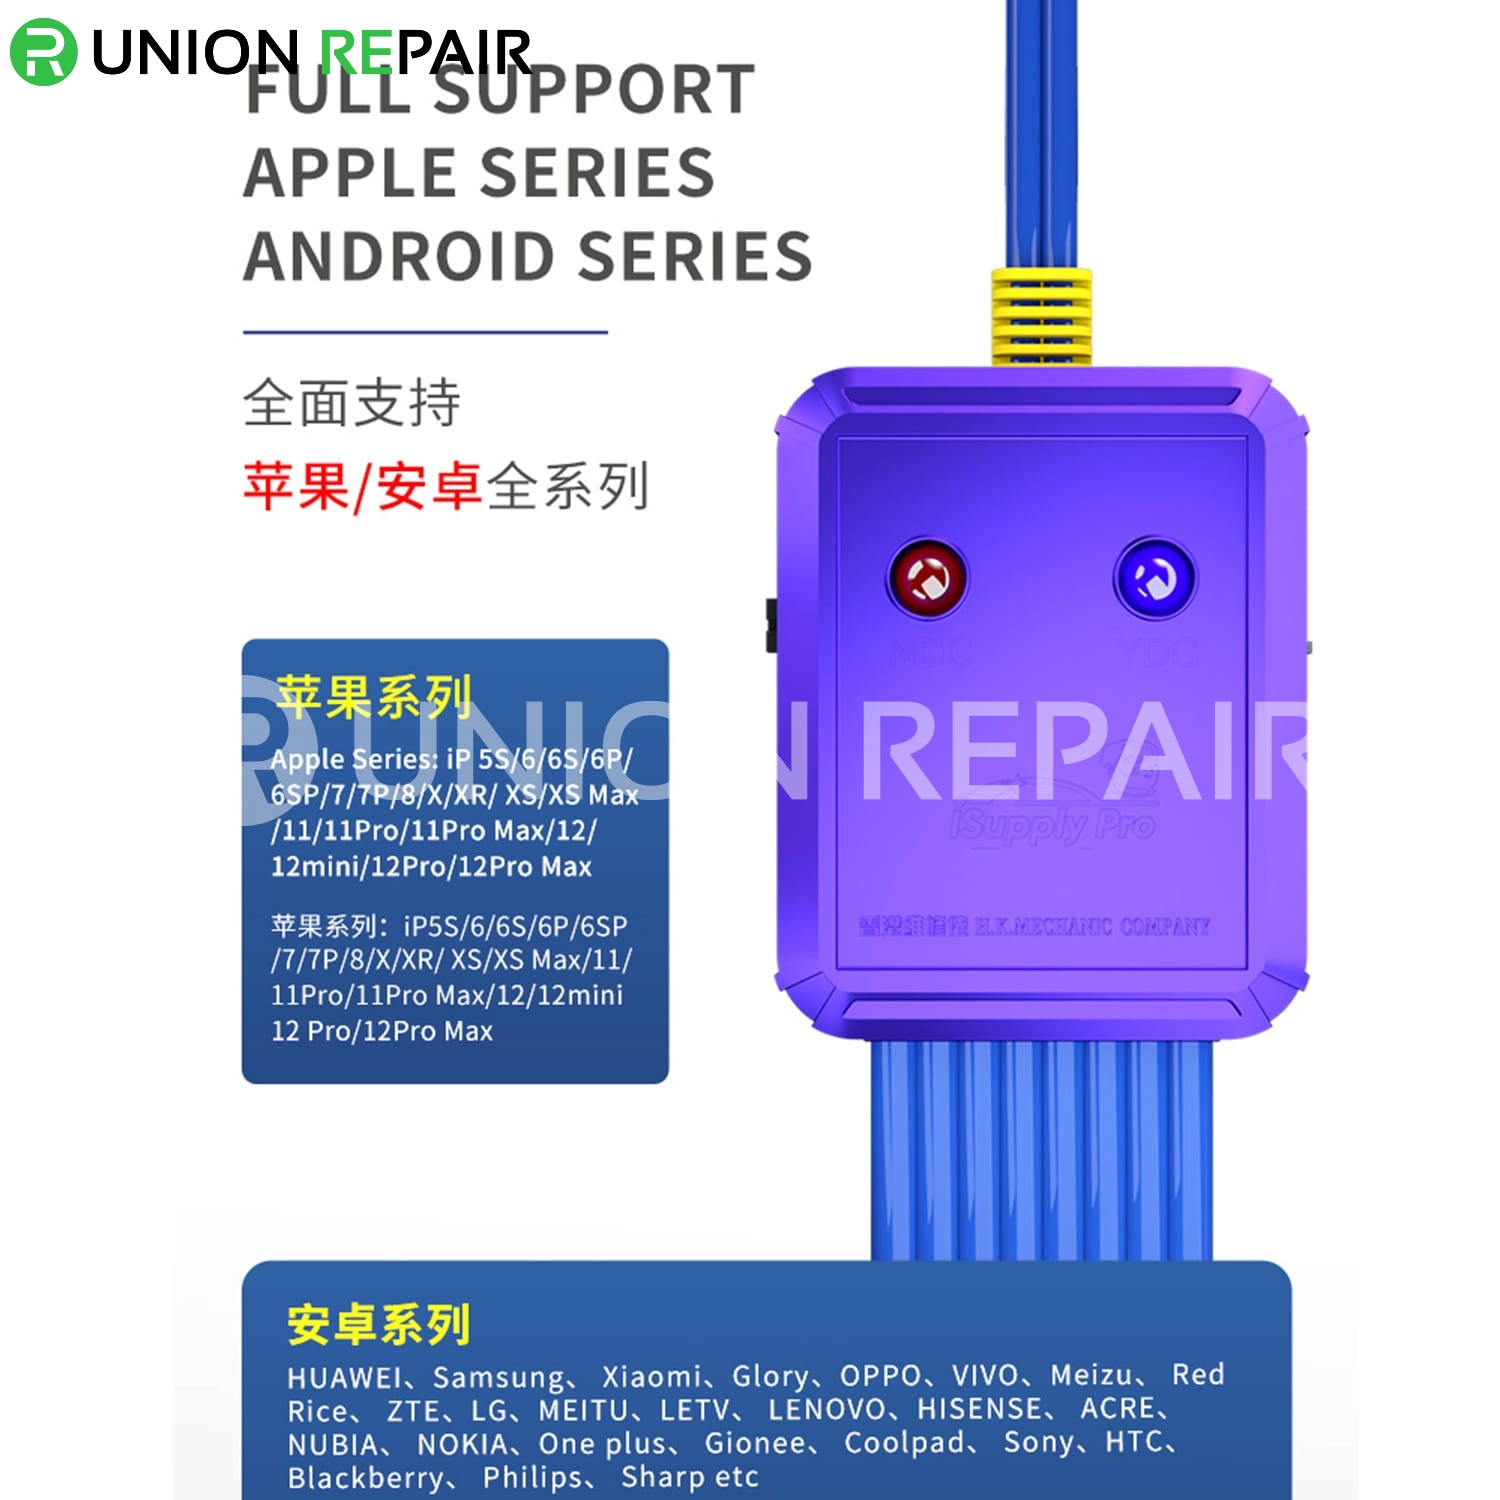 Mechanic iSupplyPro Power Boot Cable for iPhone 5s-12promax Android